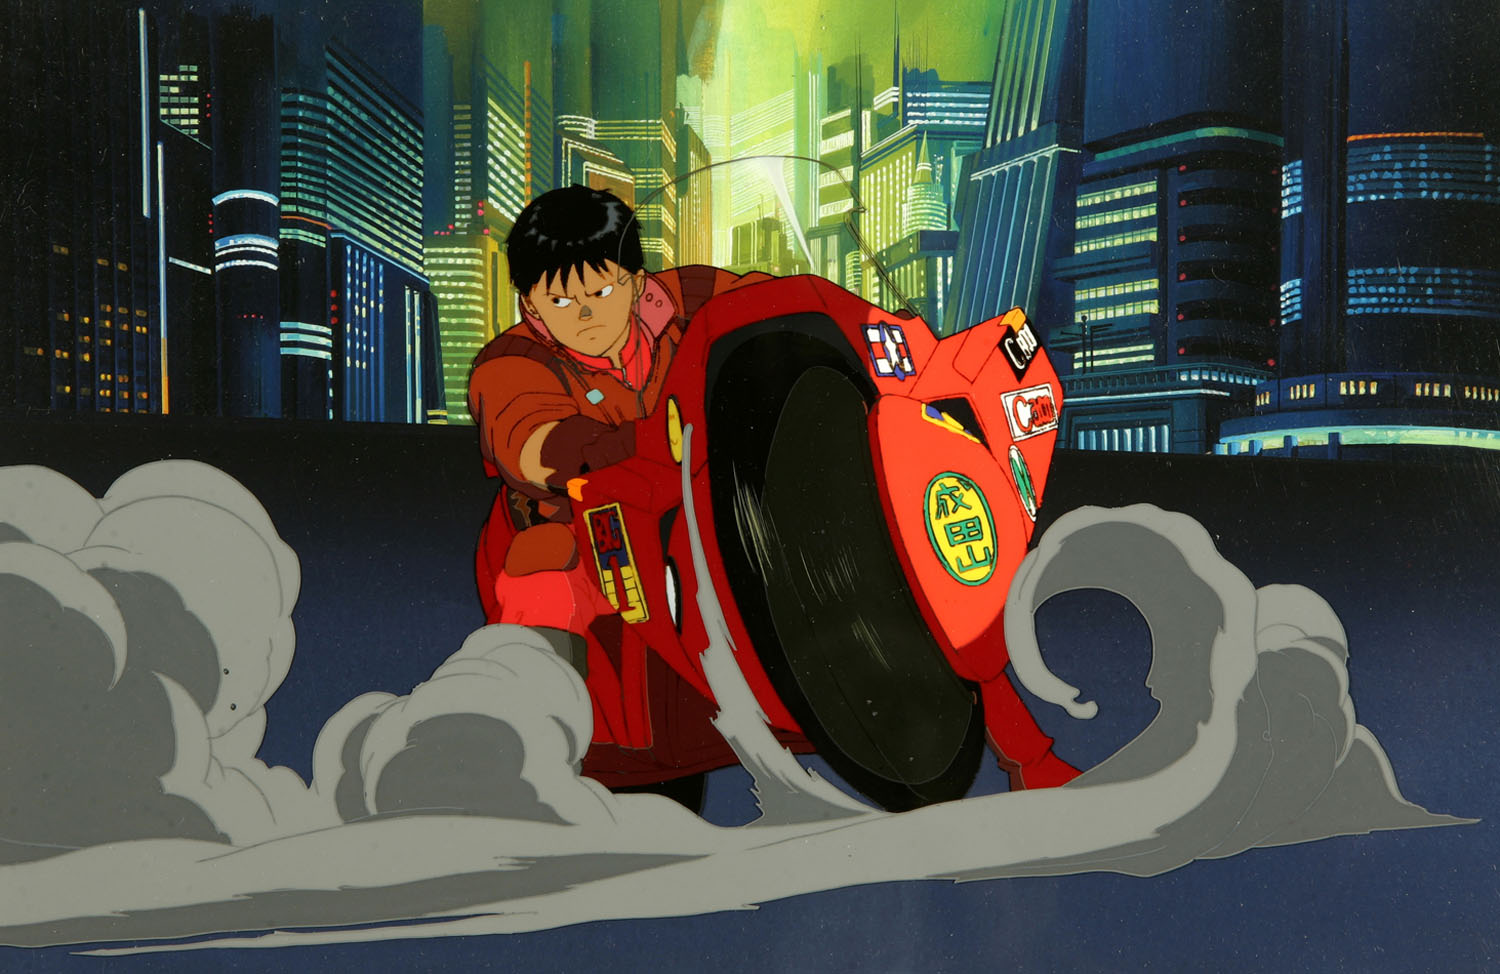 Kaneda driving motorcycle Akira 1988 animatedfilmreviews.blogspot.com